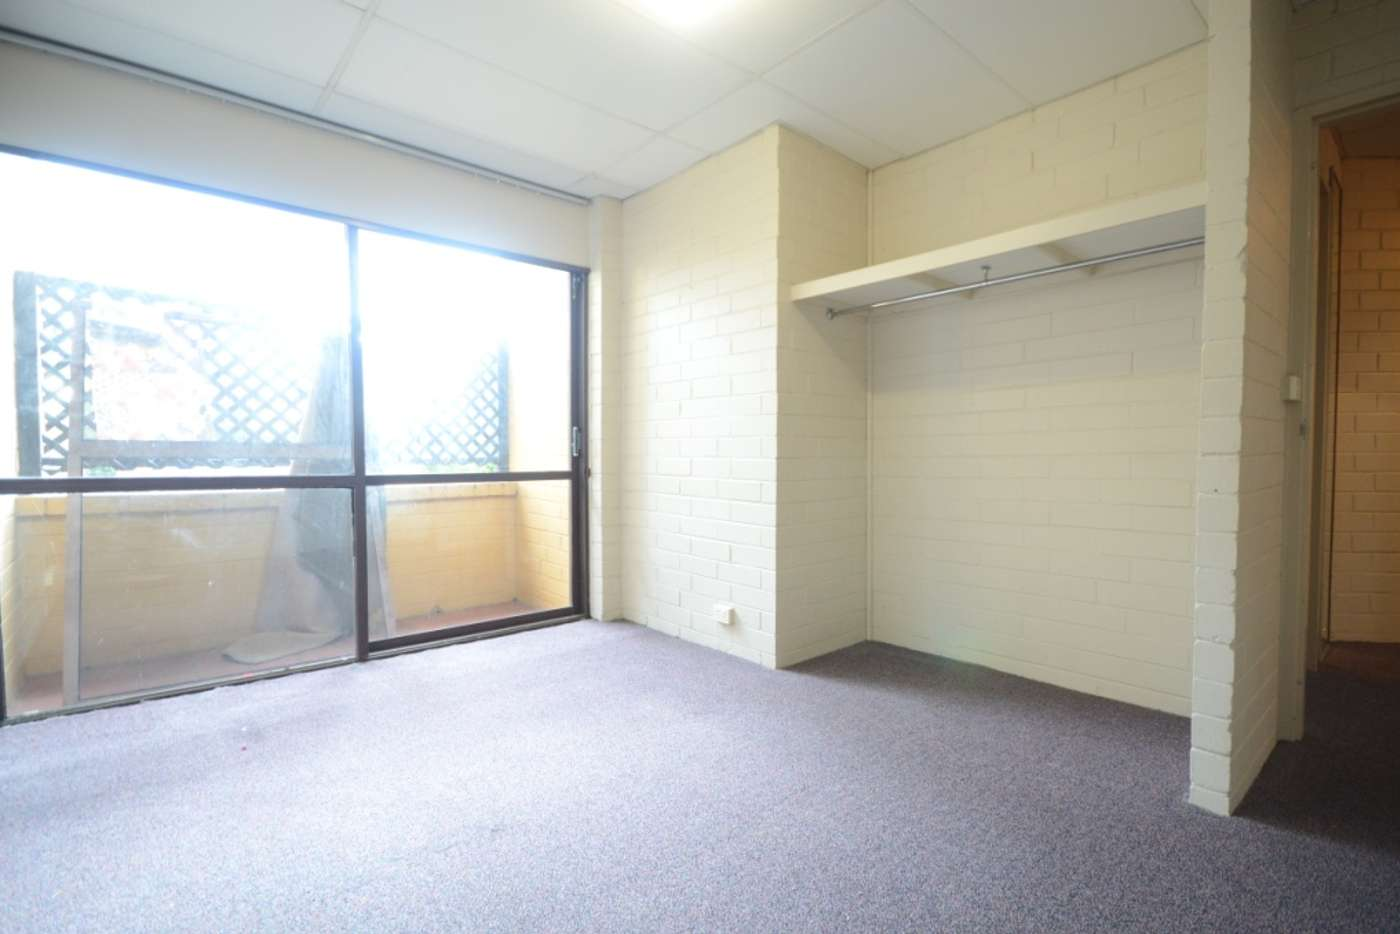 Seventh view of Homely unit listing, 21A Tucks Road, Toongabbie NSW 2146